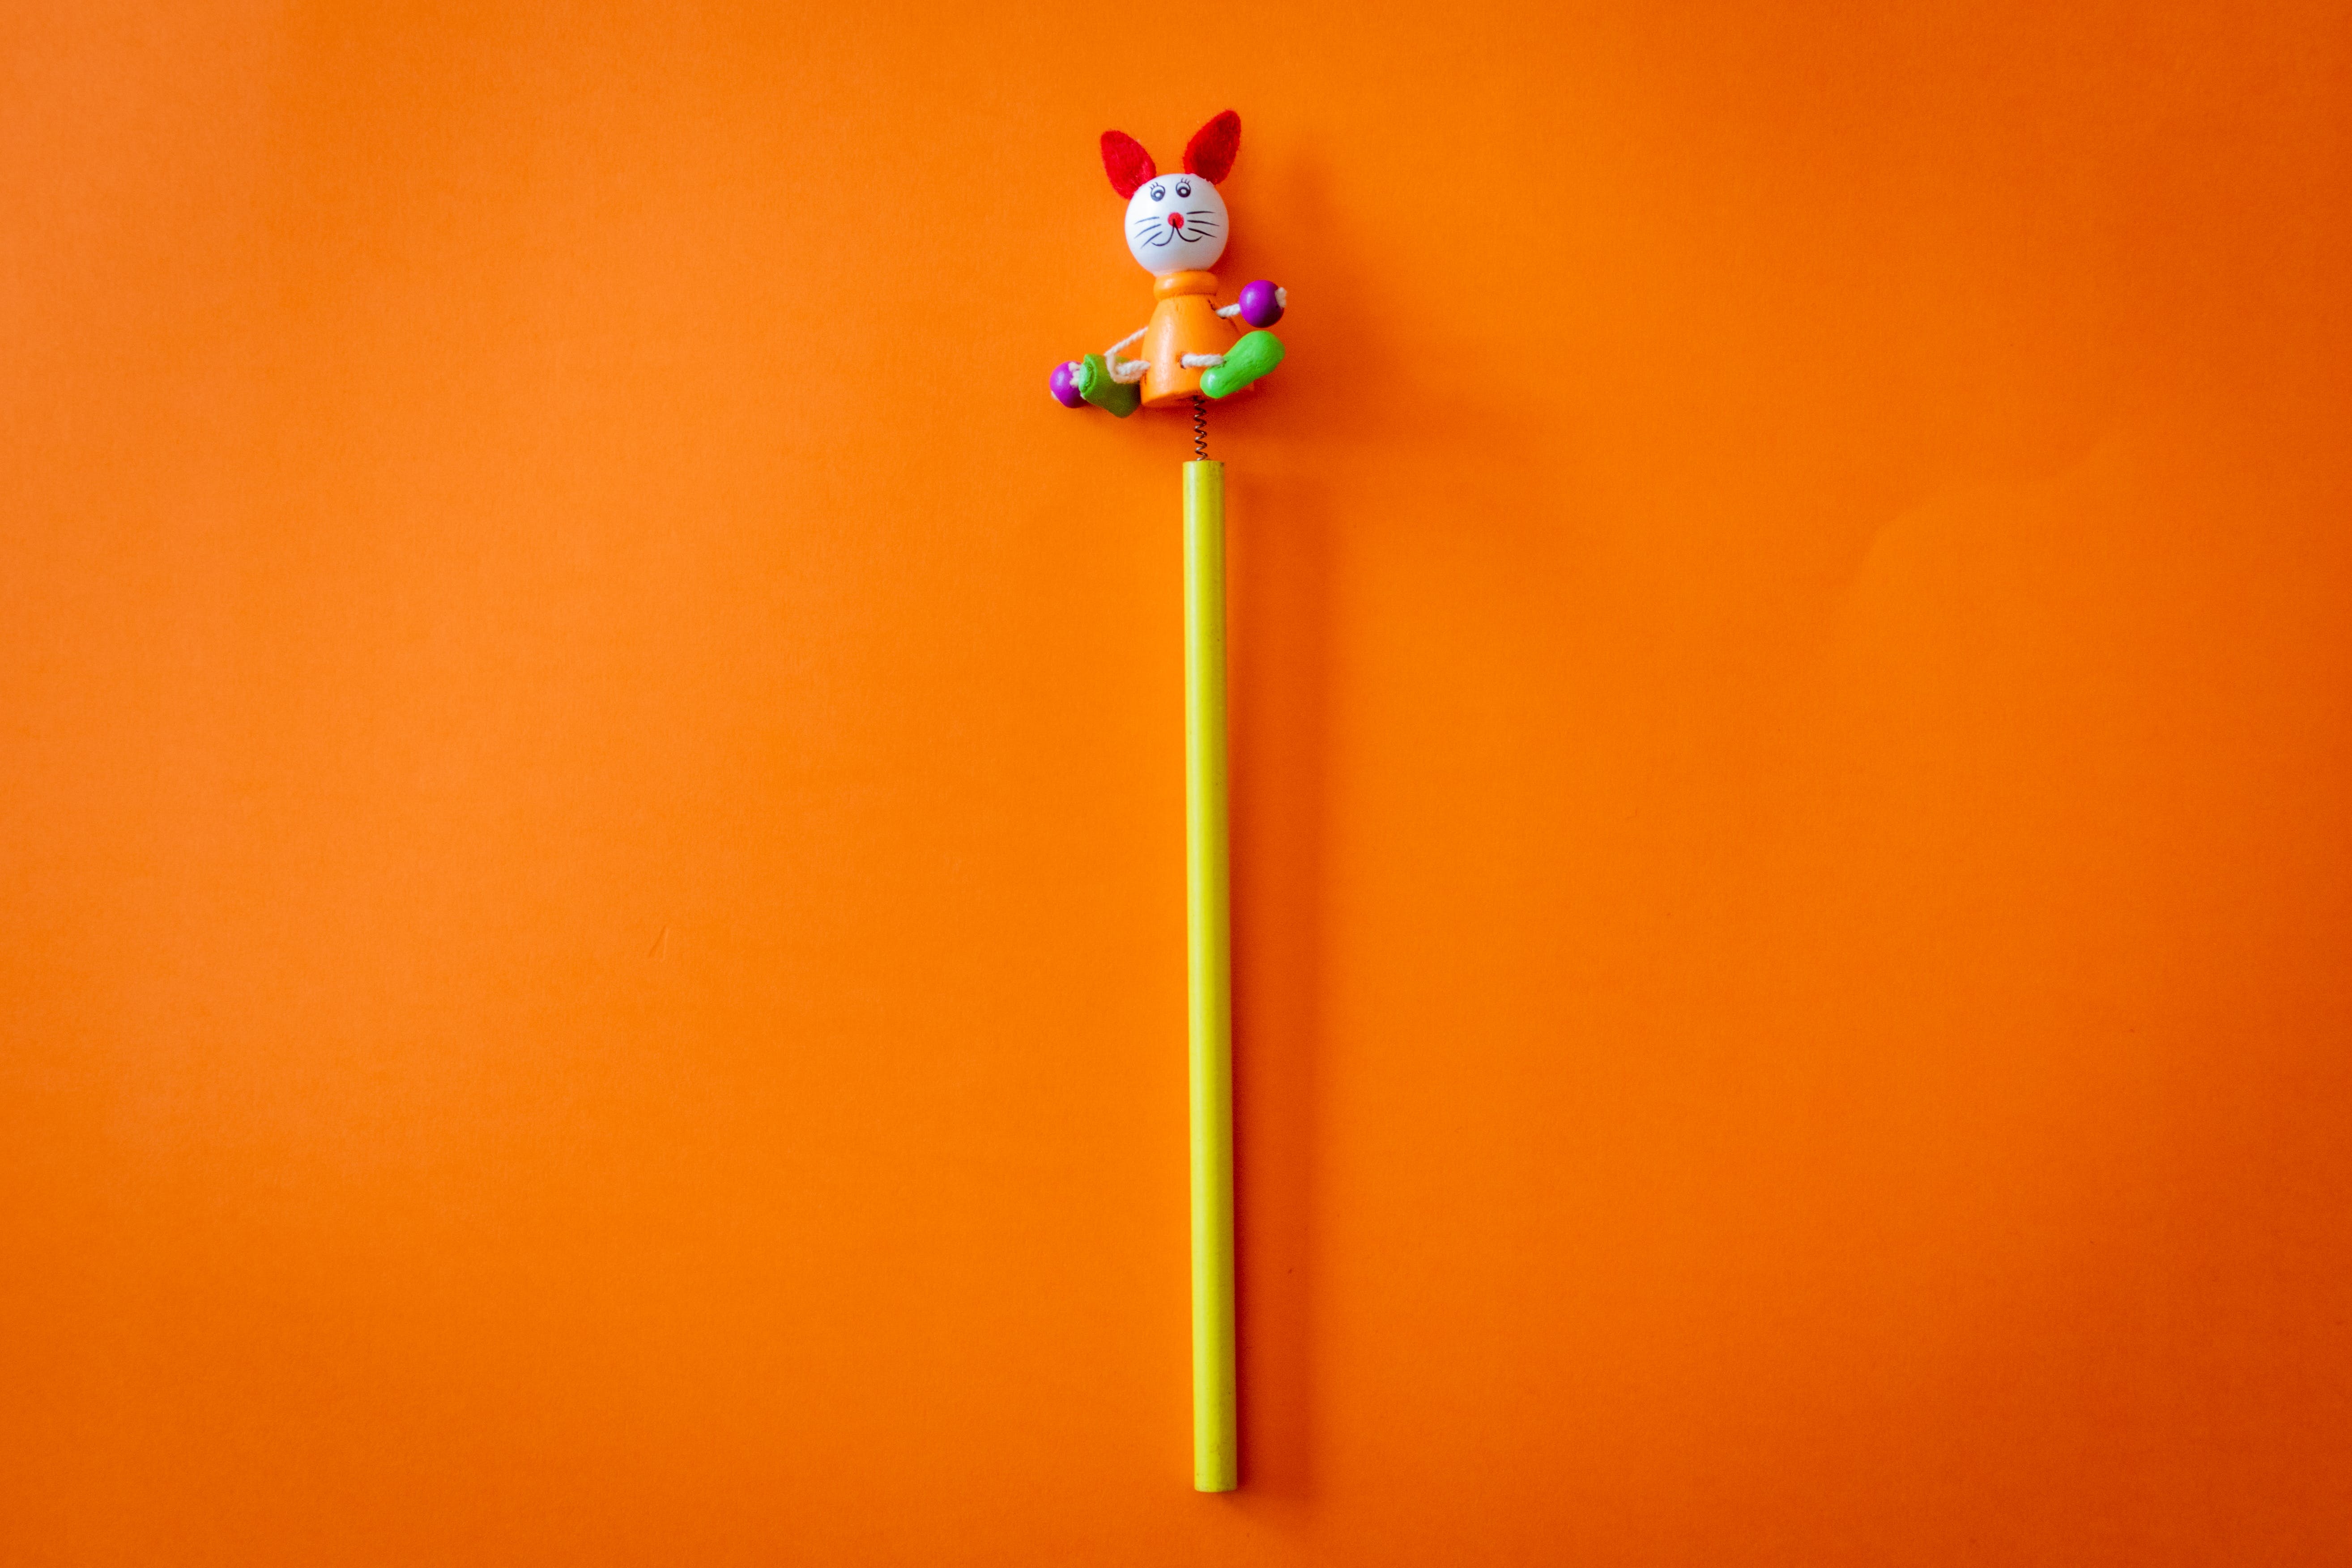 Yellow and Multicolored Animal Toy on Orange Surface